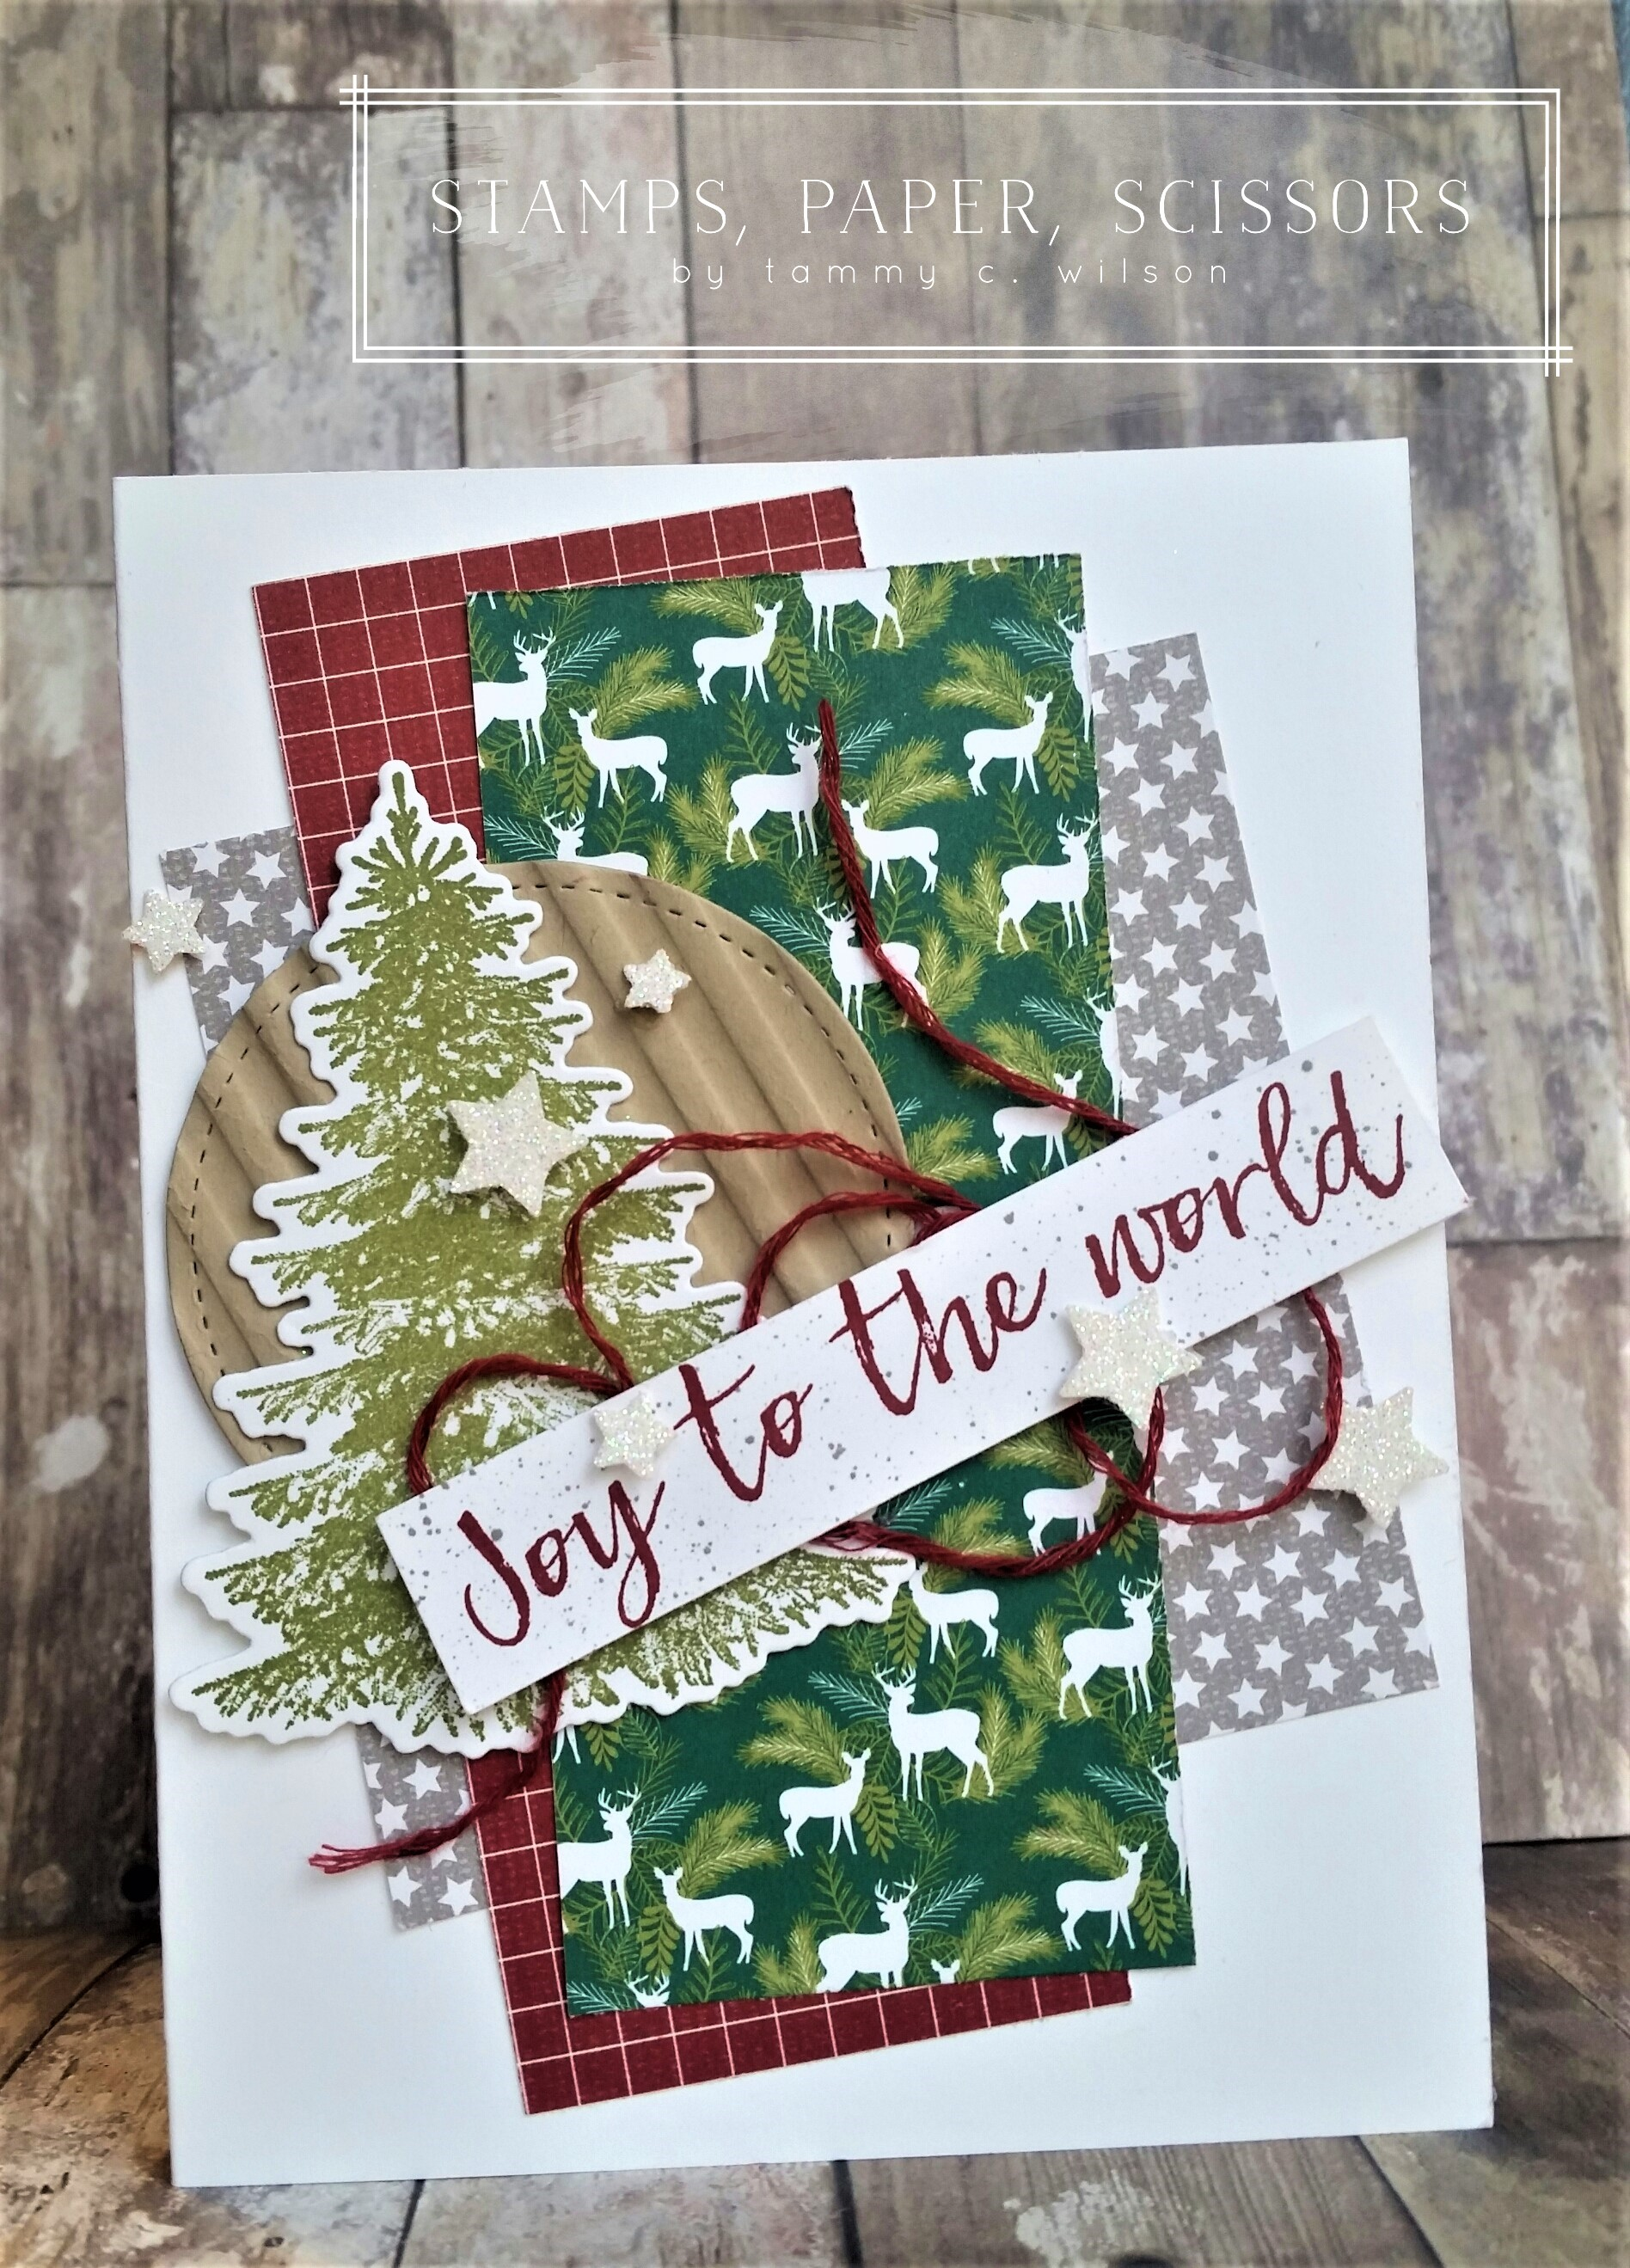 In the Woods - Joy to the World by Tammy C. Wilson